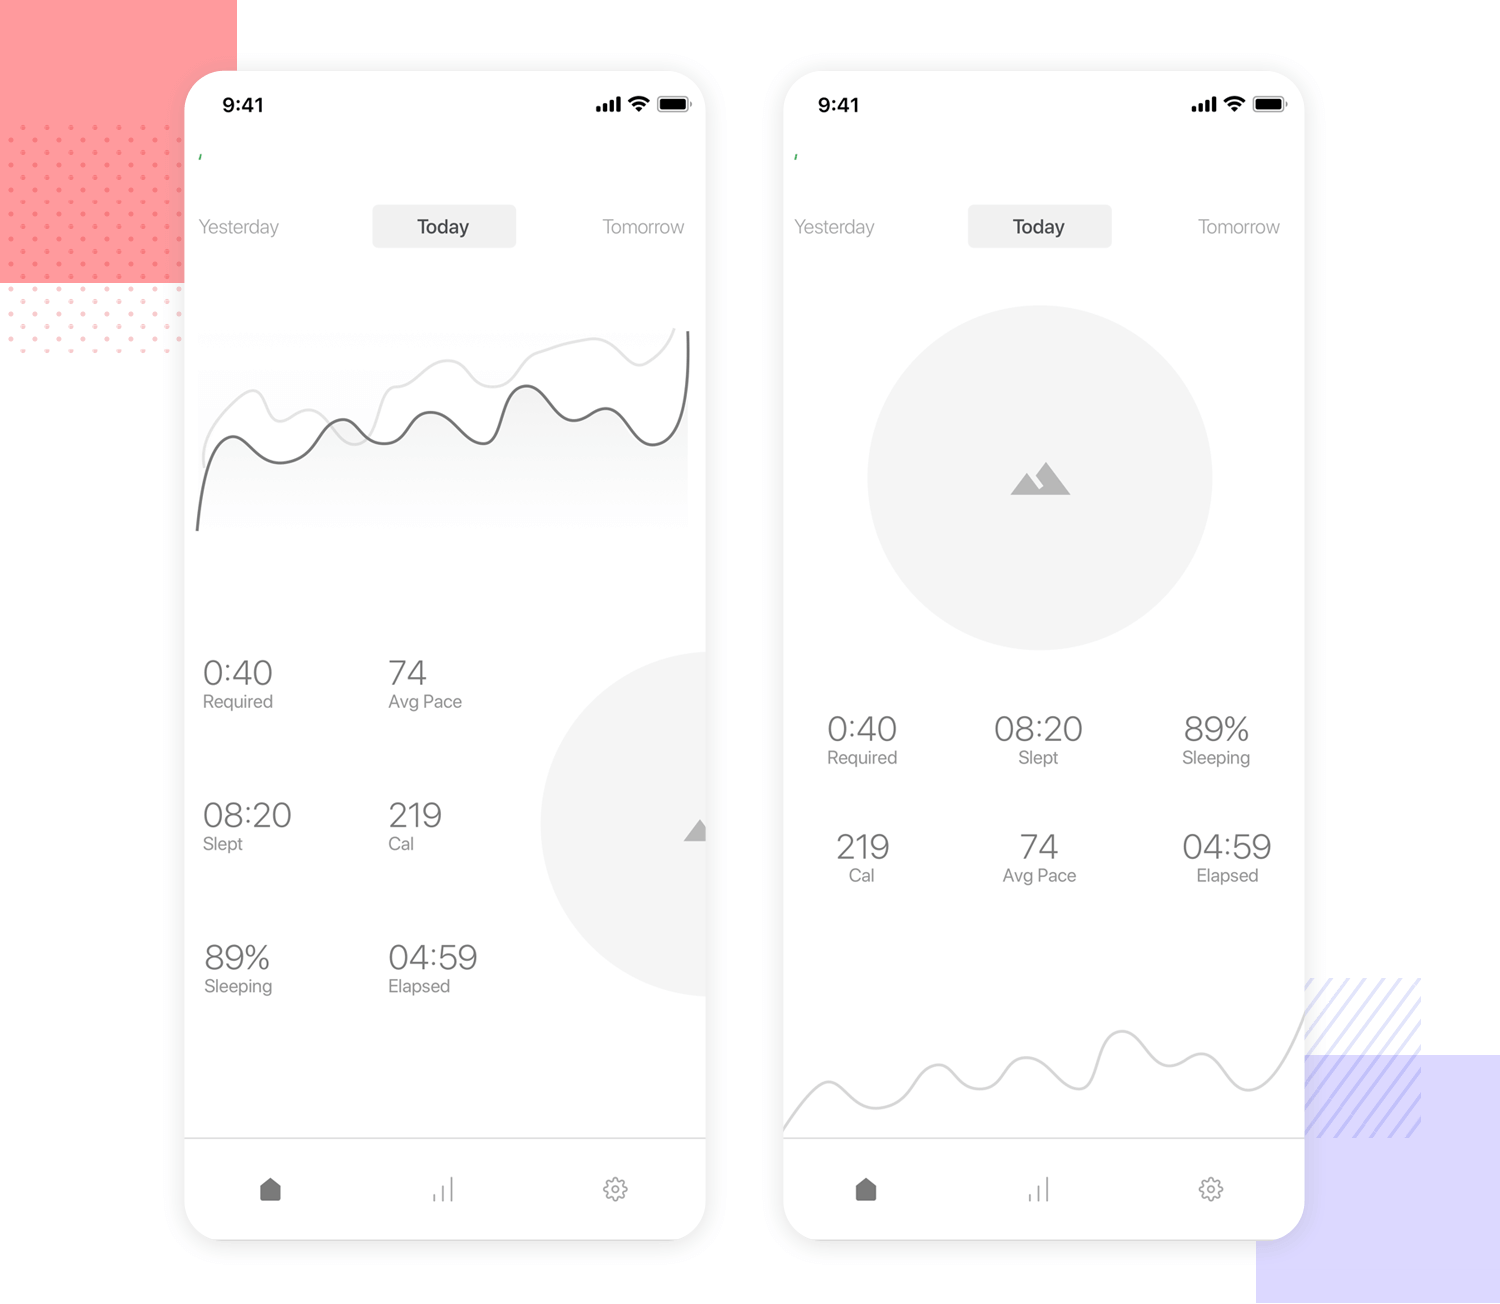 mobile app wireframe for banking and personal finance tools